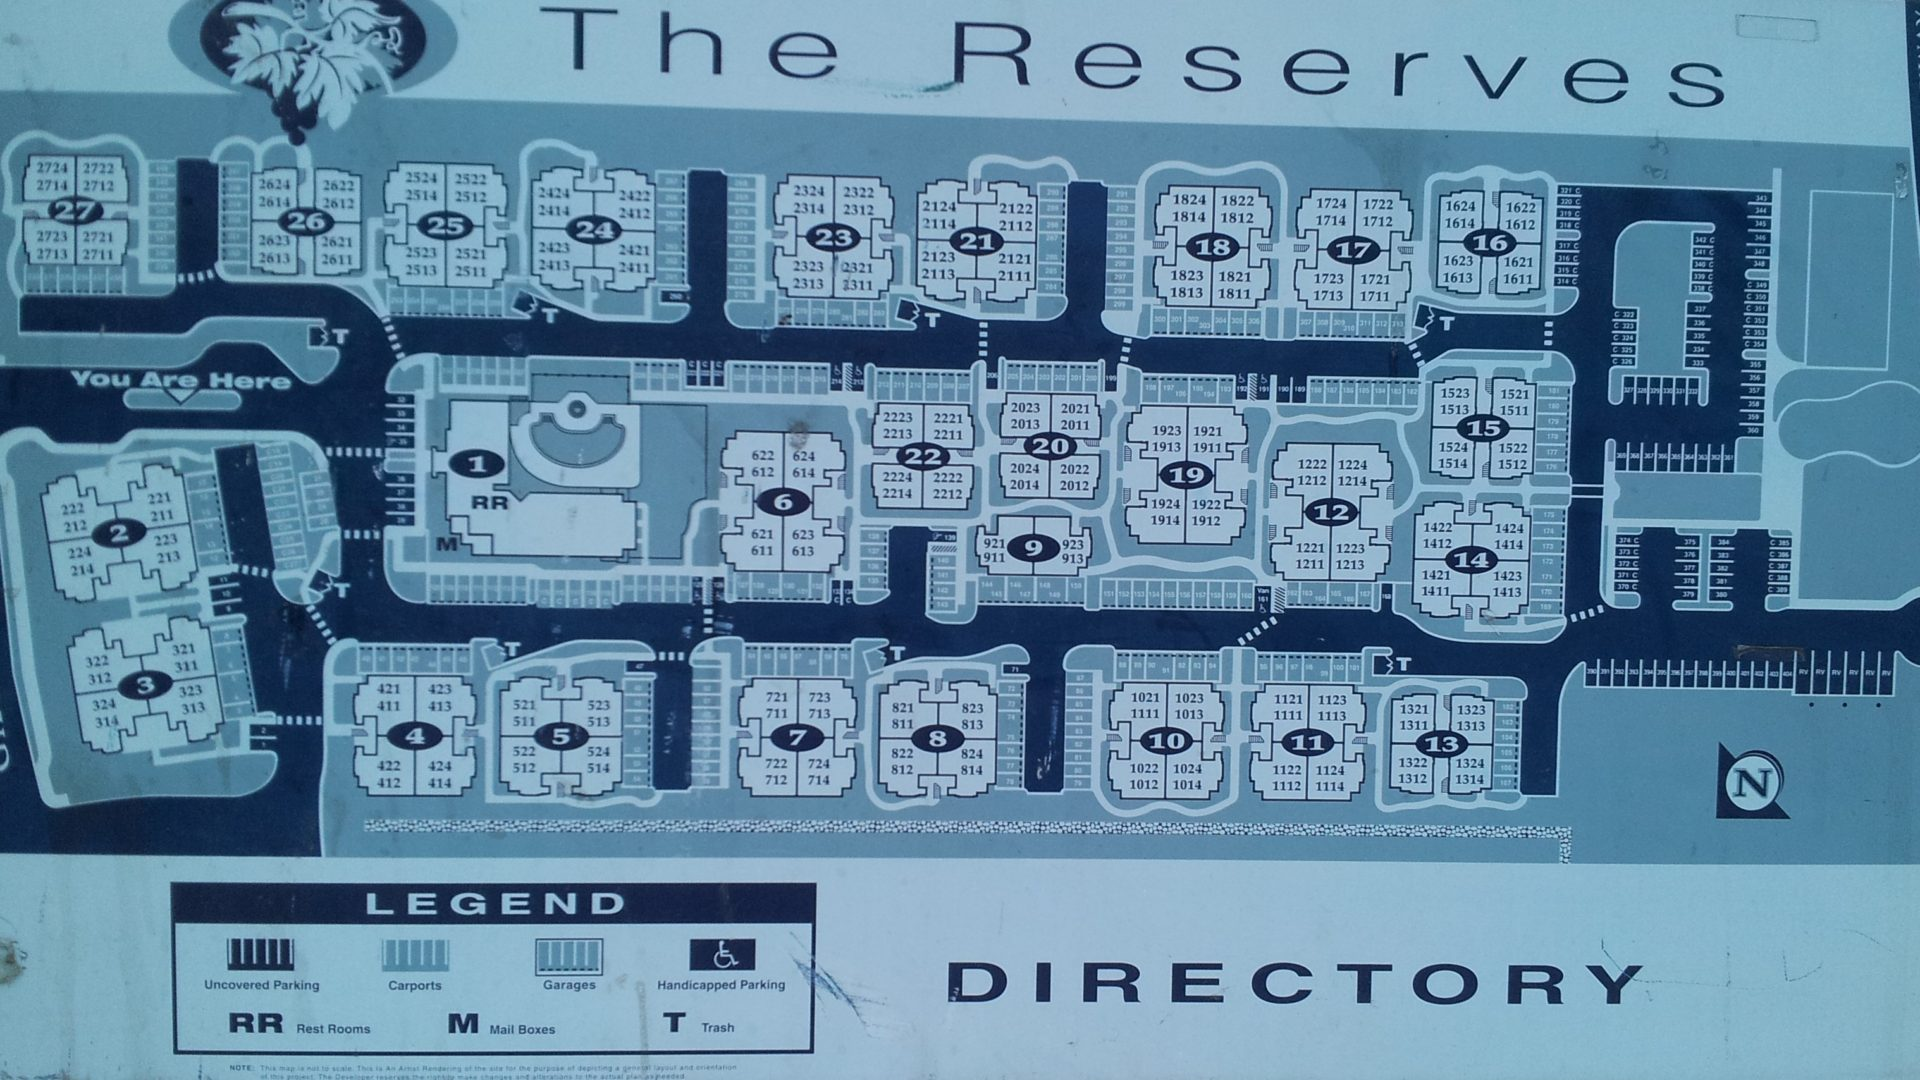 Map - The Reserves at Galleria, Roseville, California